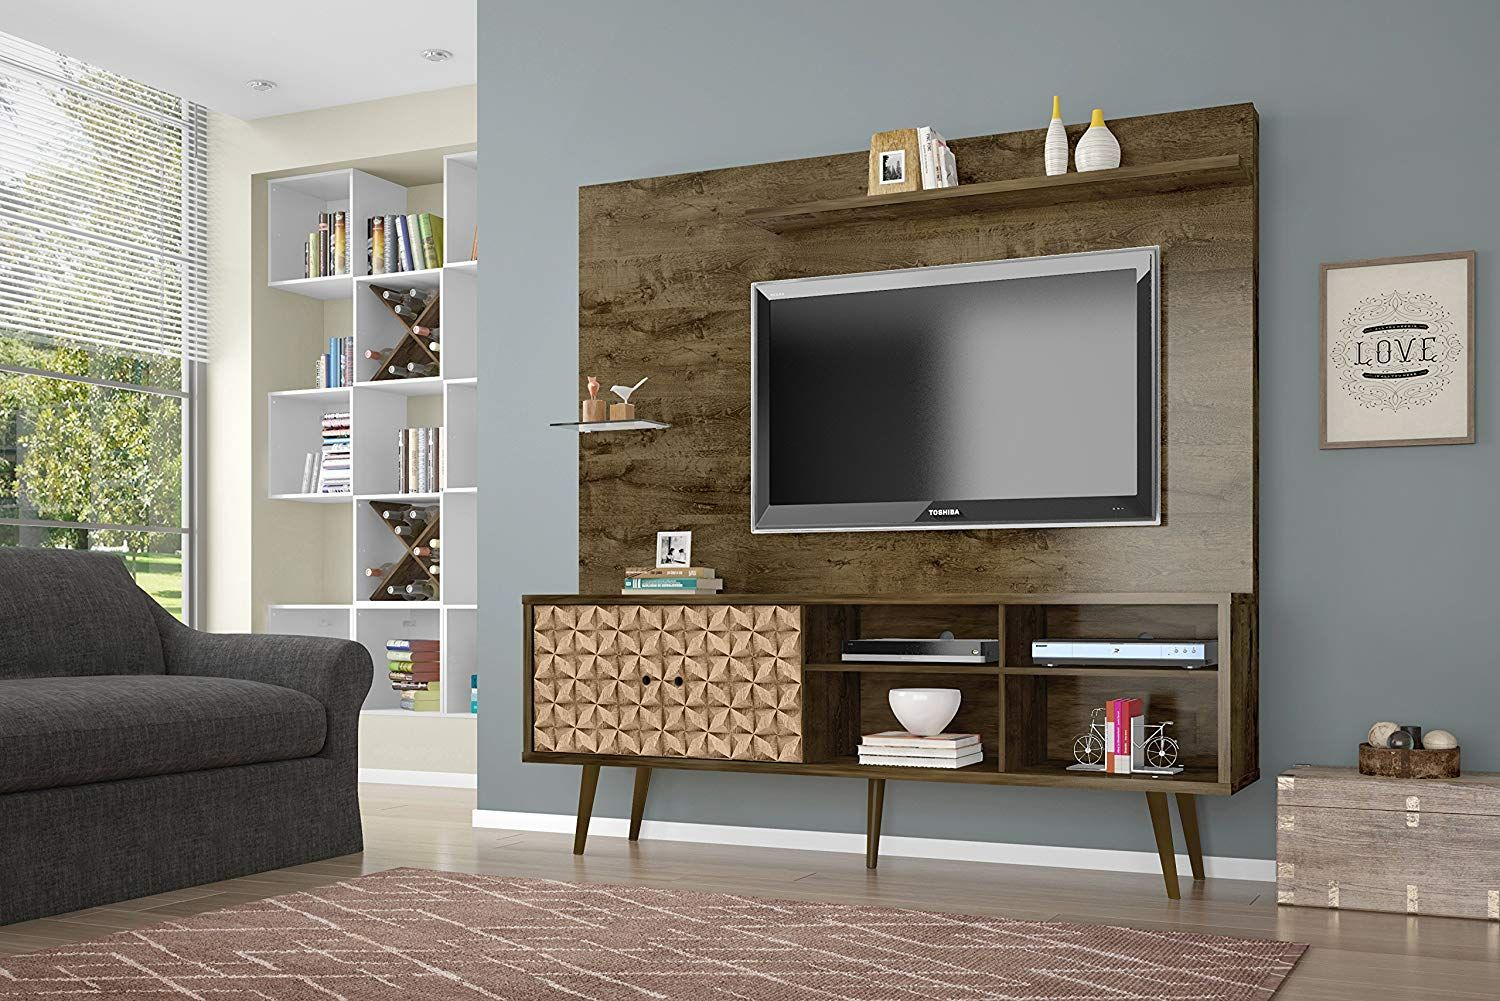 Liberty Complete Living Room Entertainment Center And Tv Stand Rustic Brown 3d Brown Casagear Fa Living Room Designs Rustic Living Room Entertainment Center